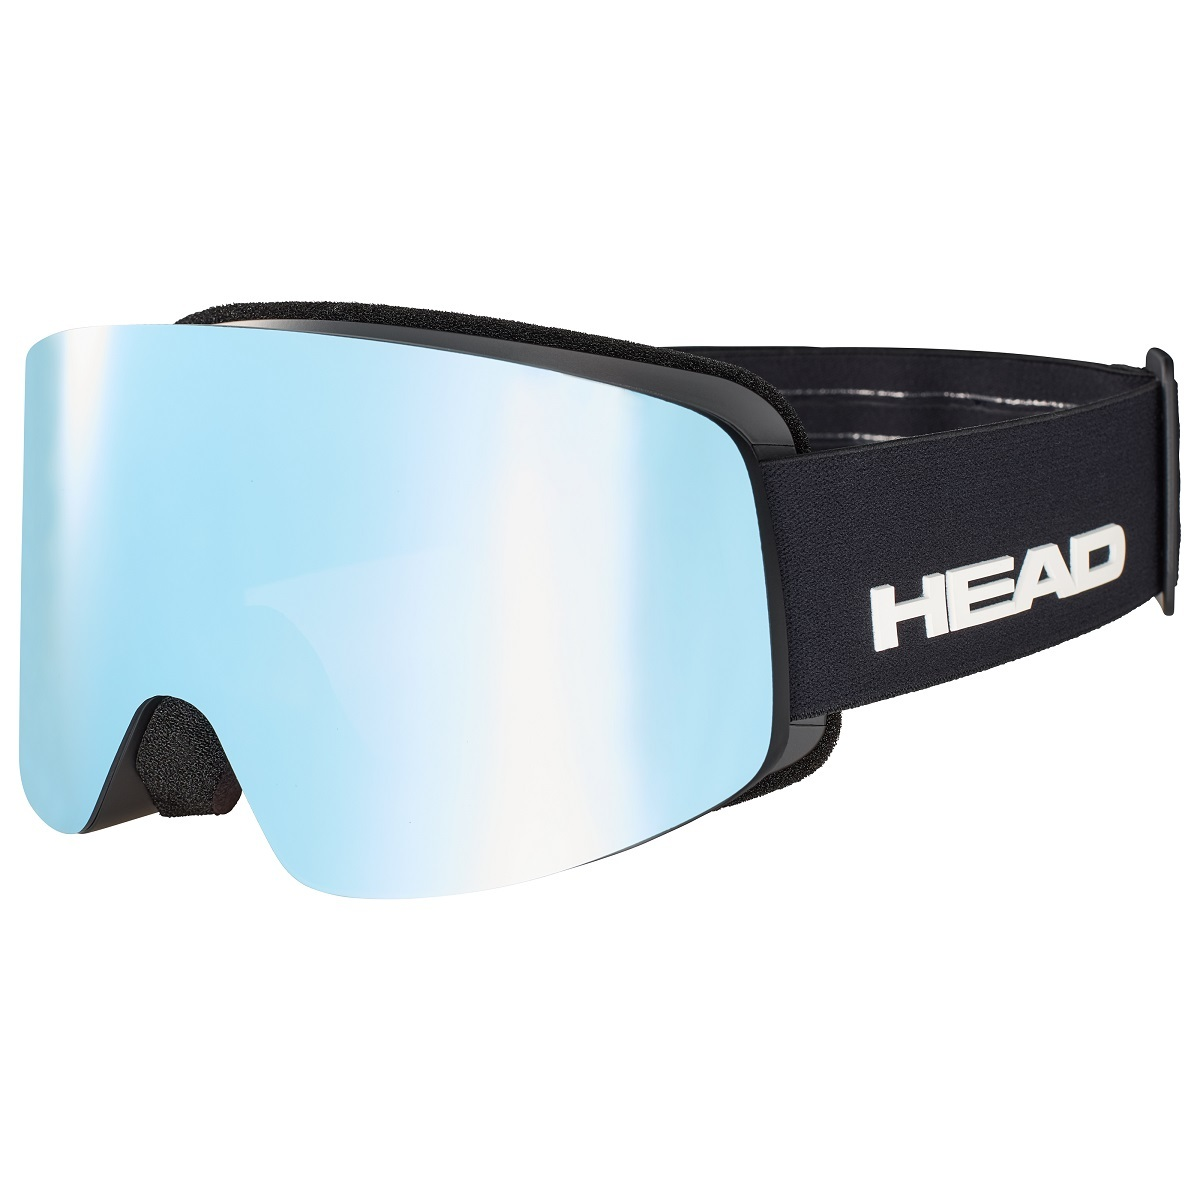 Head Infinity FMR + SpareLens